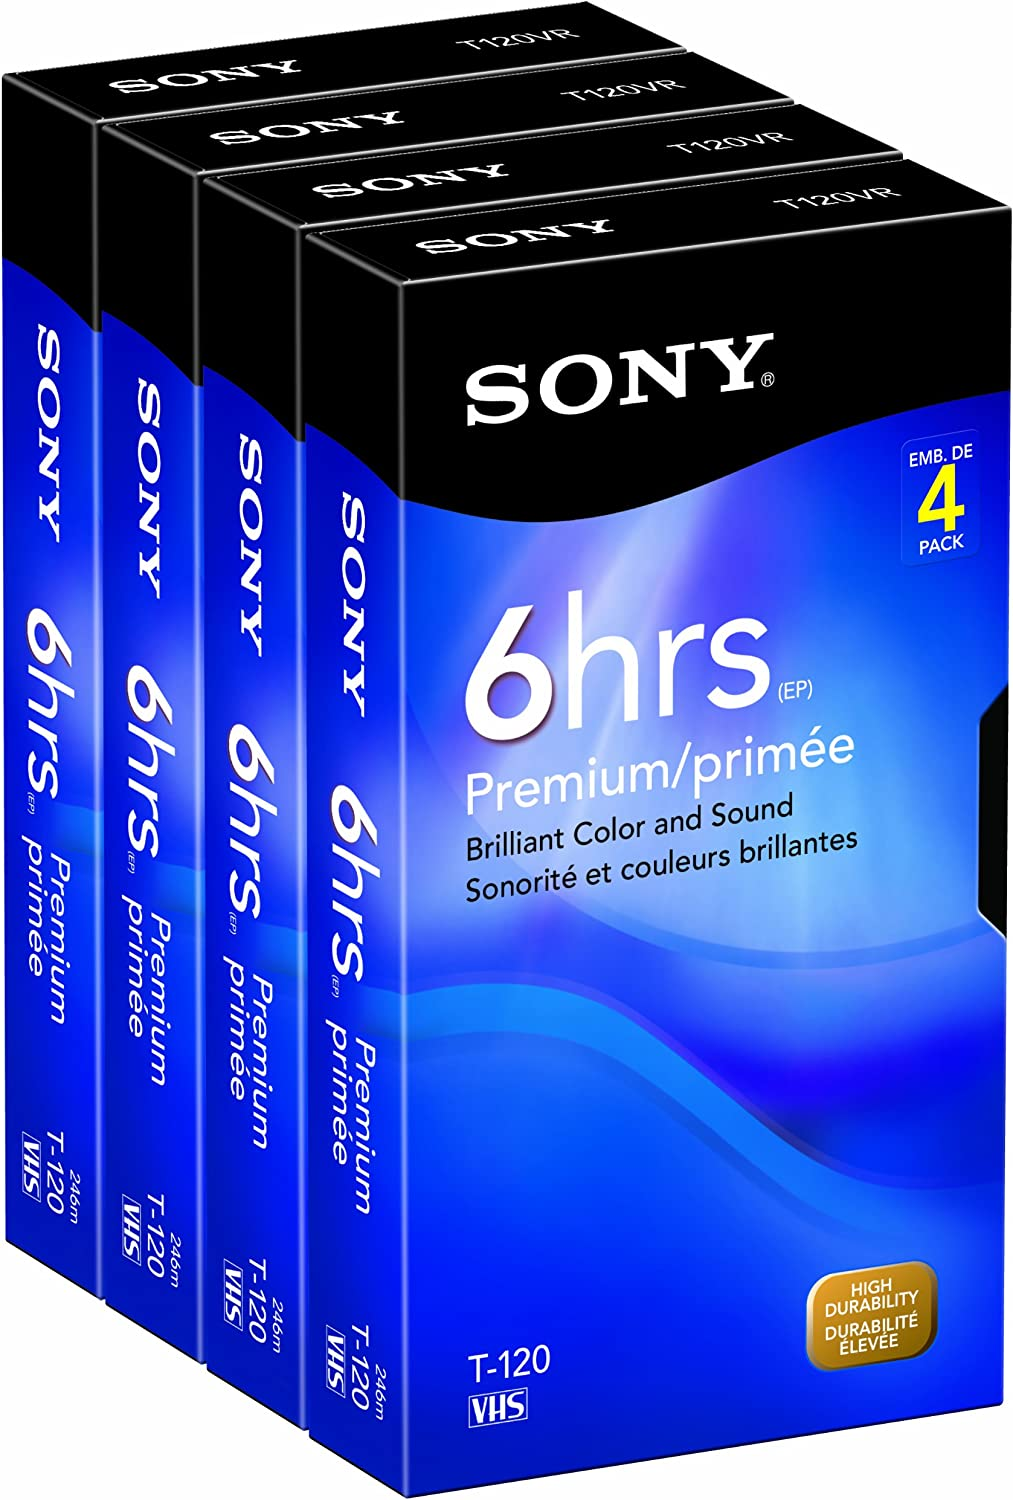 Sony 4T120VRC 4-Pack 120-Minute VHS Tapes (Discontinued by Manufacturer)